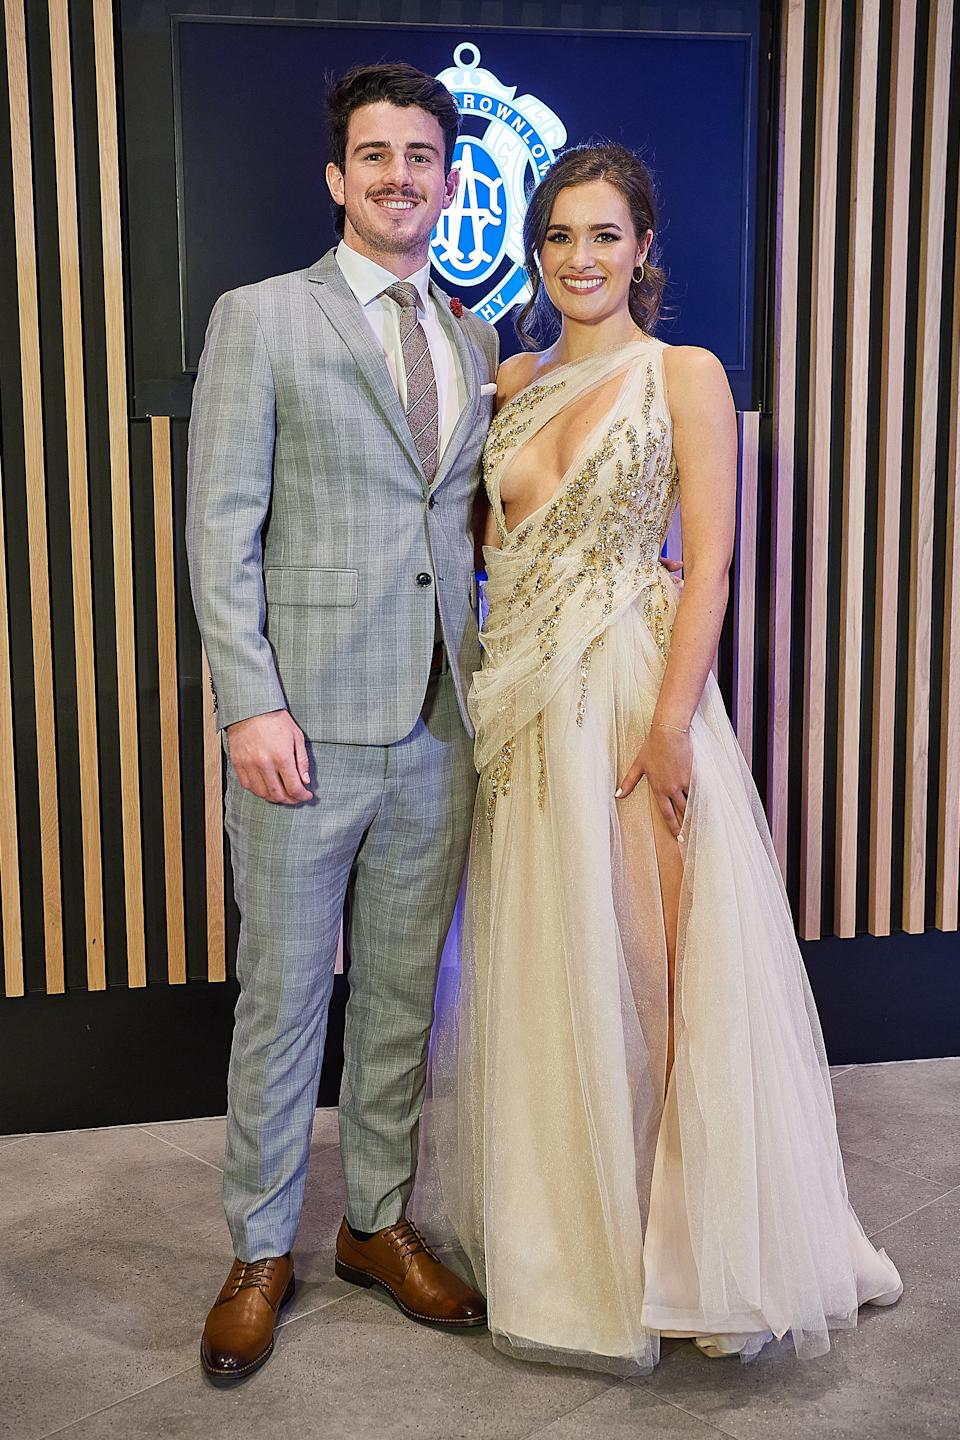 Andrew Brayshaw and partner Lizzie Stock pose for a photo during the 2020 Brownlow Medal Count at Optus Stadium on October 18, 2020 in Perth, Australia.